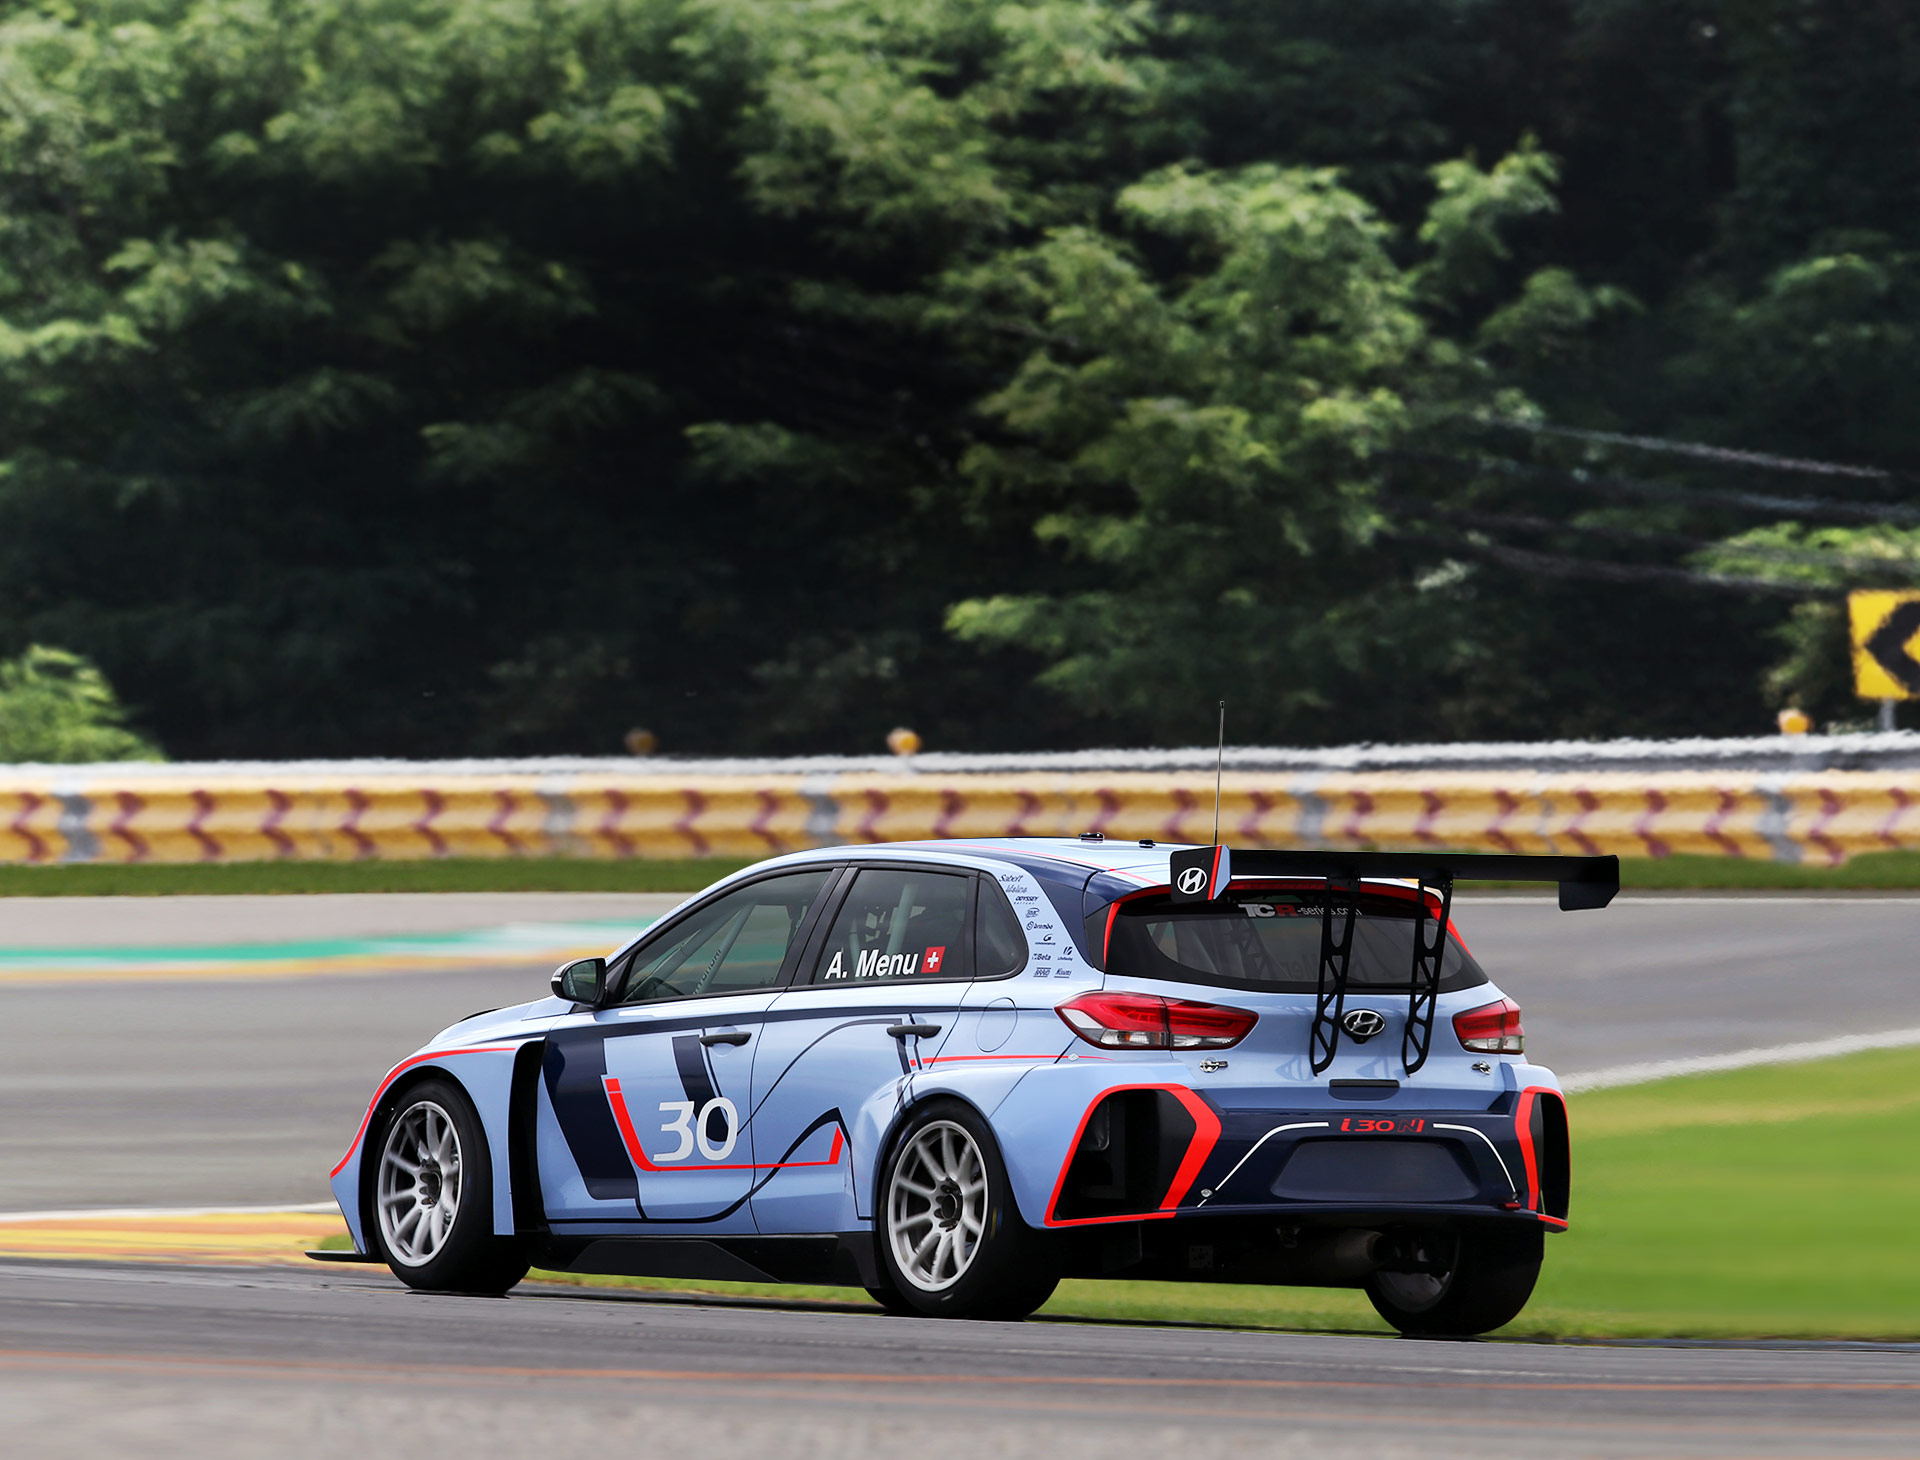 left side rear view of i30 N TCR is running on racing track